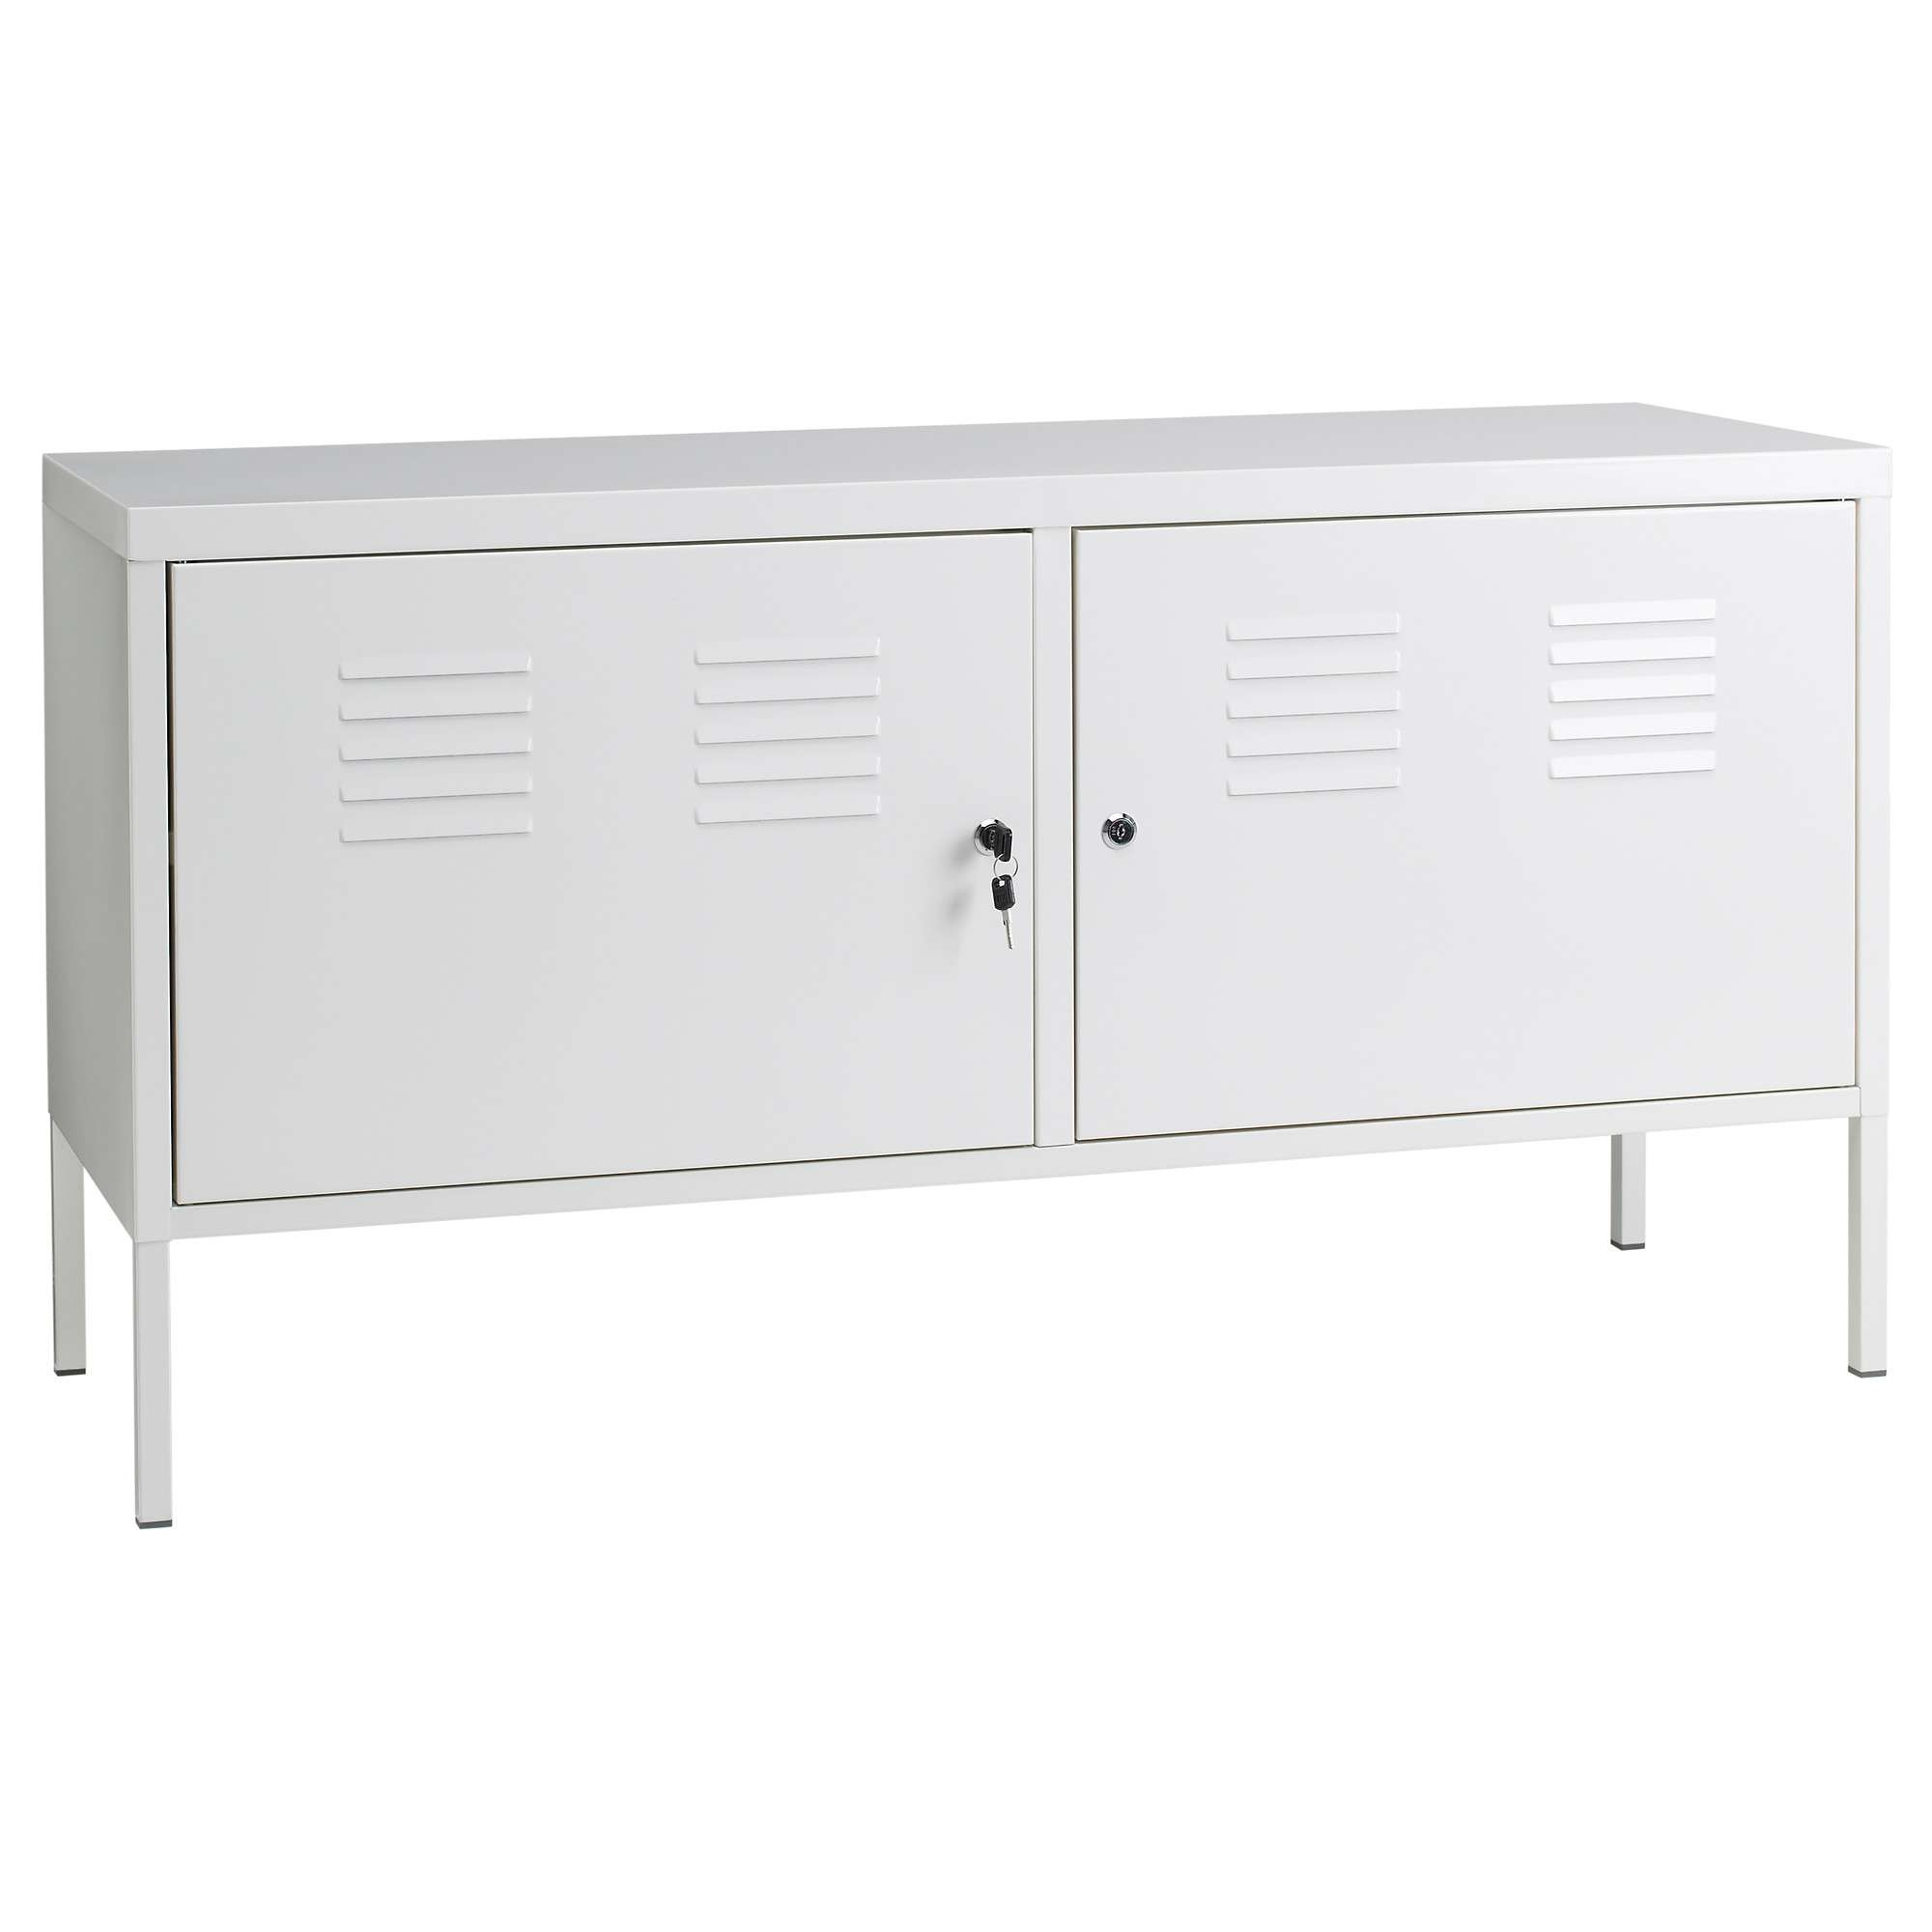 Ikea Ps Cabinet White 119X63 Cm – Ikea Pertaining To Metal Sideboards (View 11 of 20)